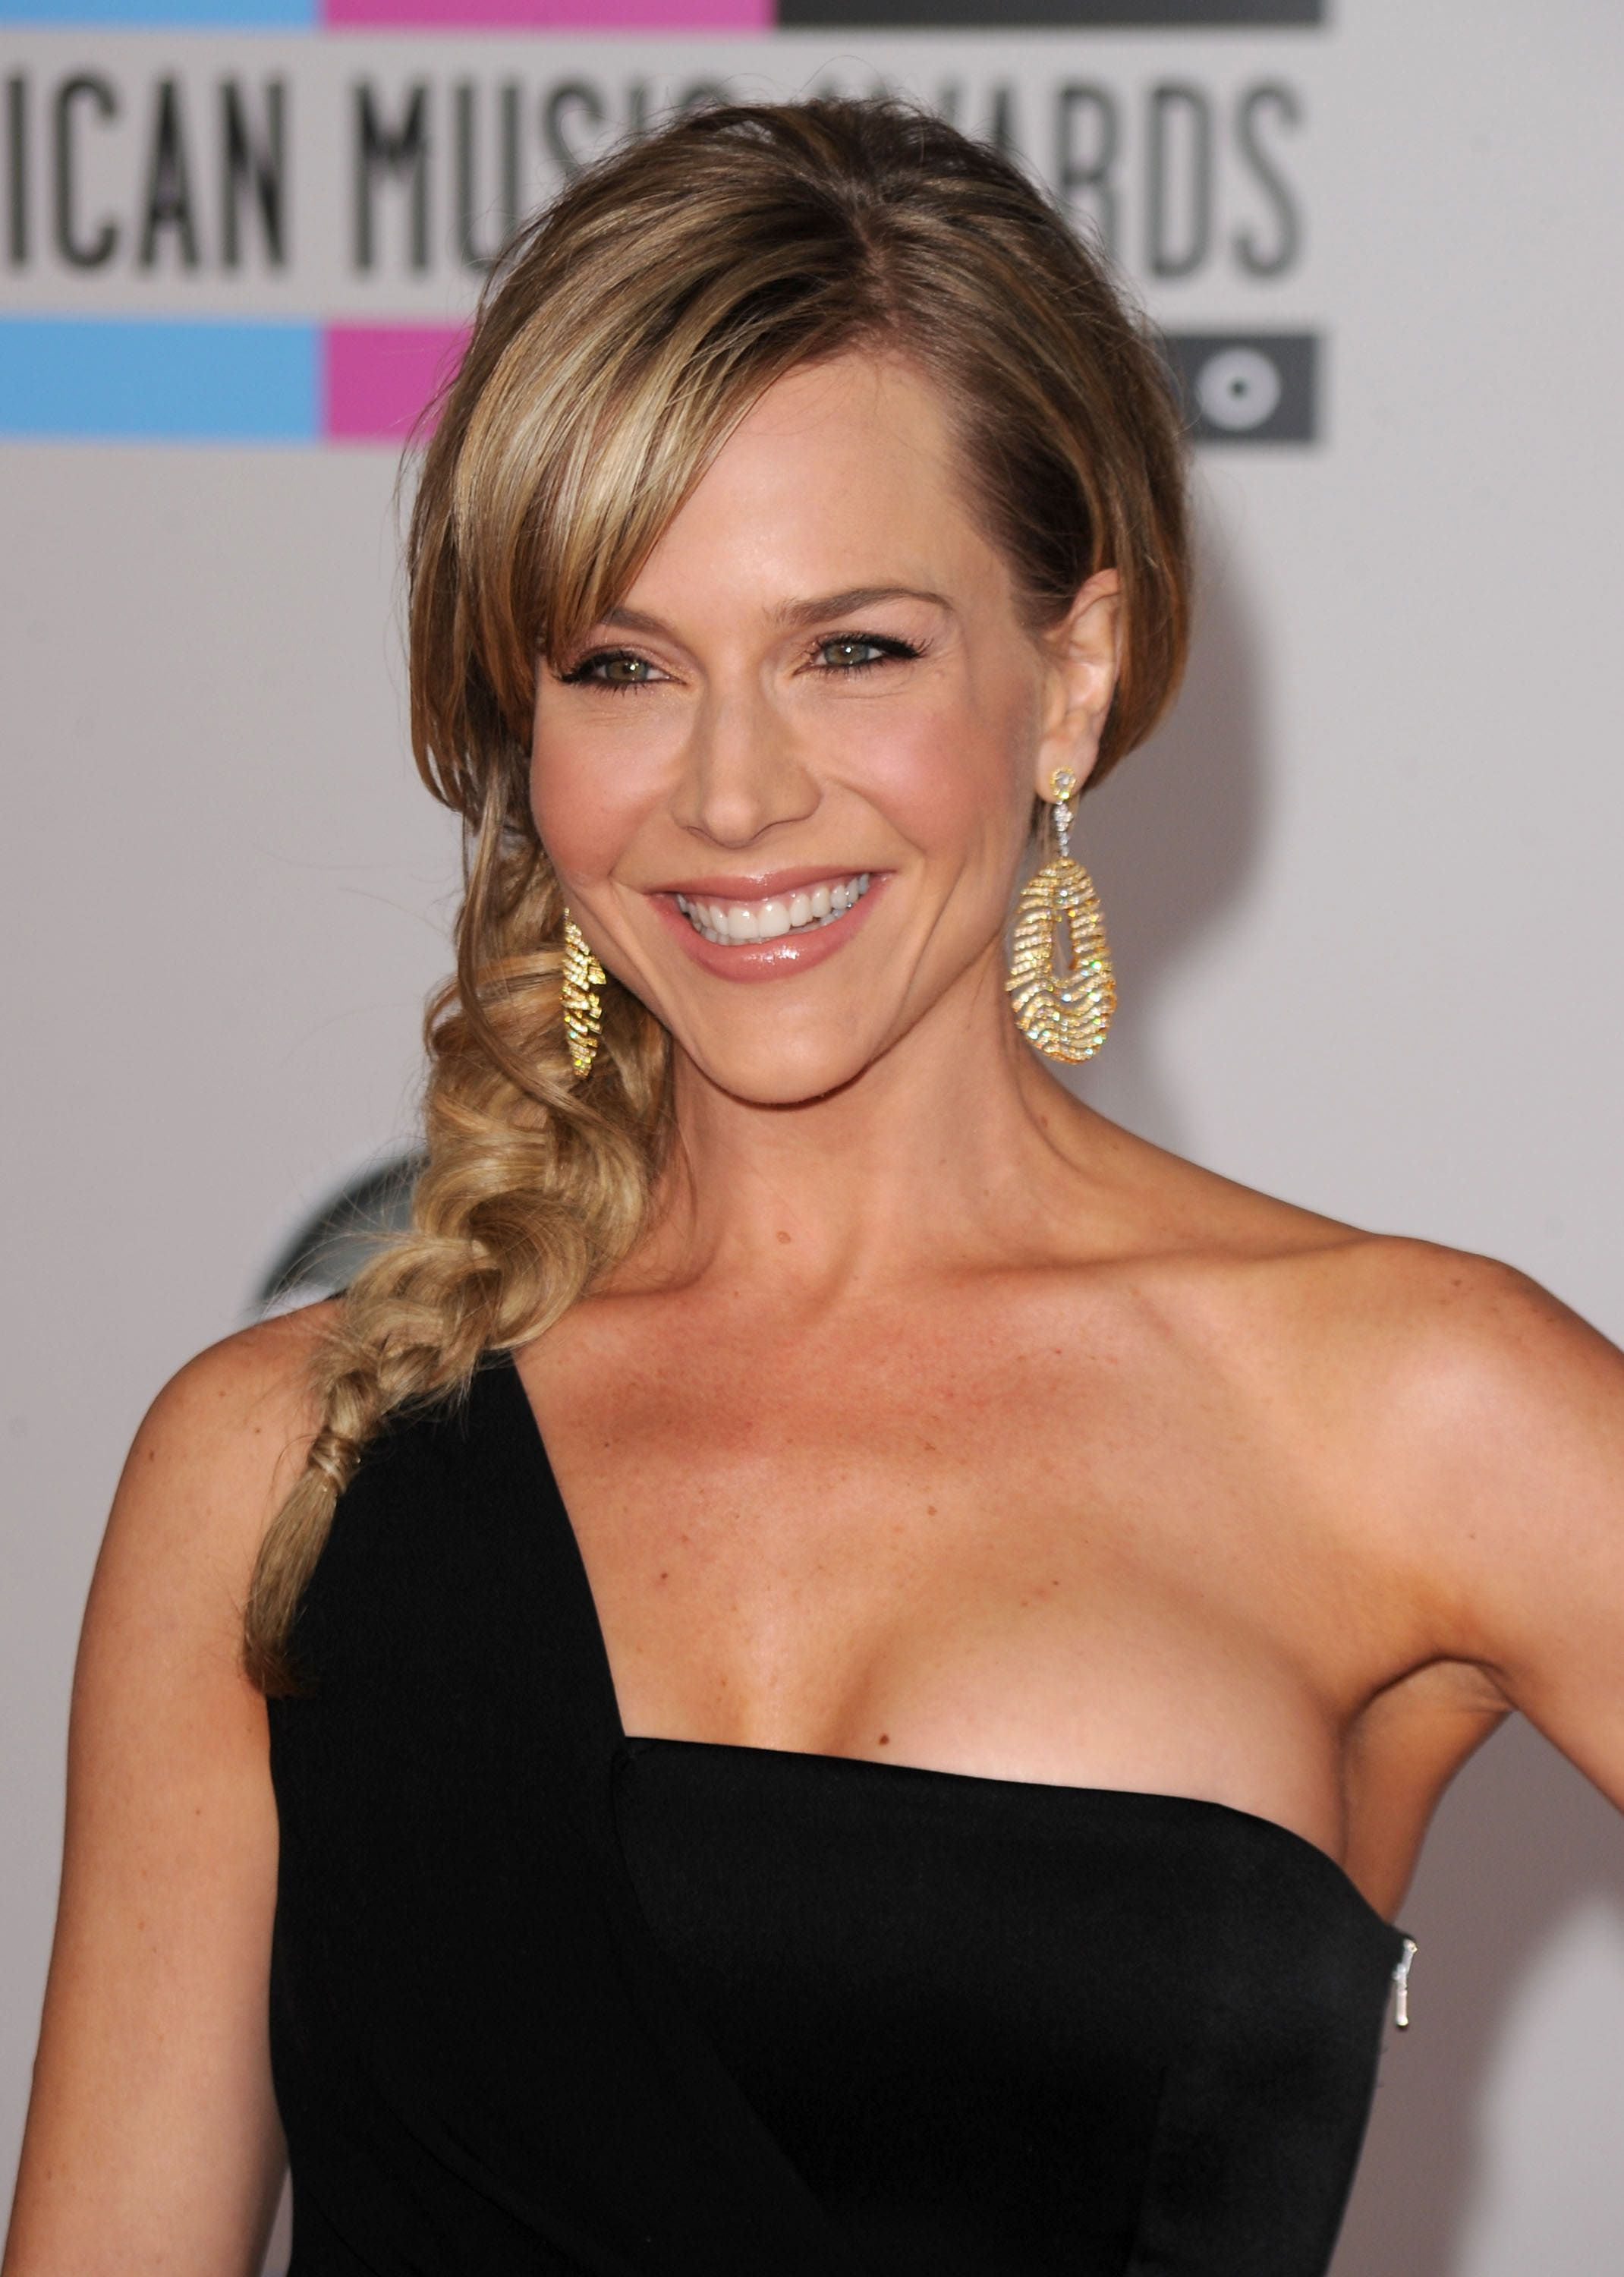 Photos Julie Benz nudes (37 foto and video), Pussy, Cleavage, Boobs, cleavage 2019